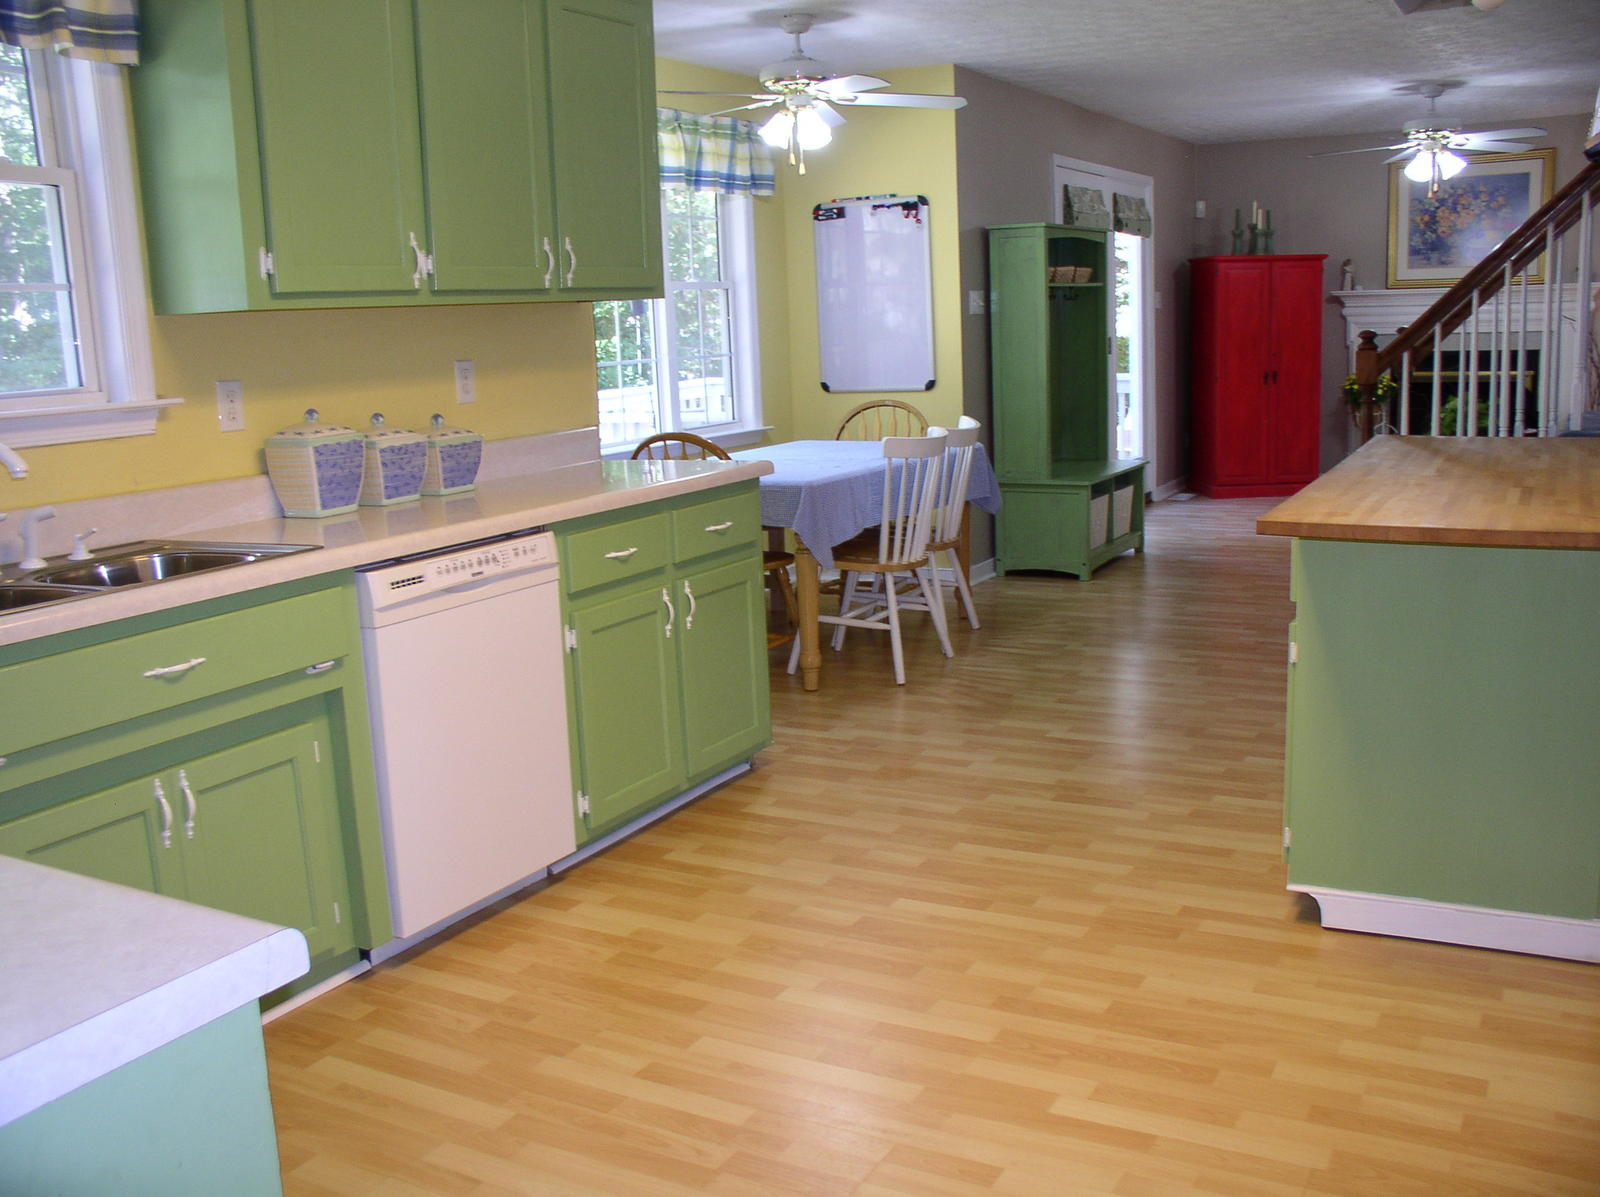 Painting your kitchen cabinets painting tips from the pros Kitchen color ideas